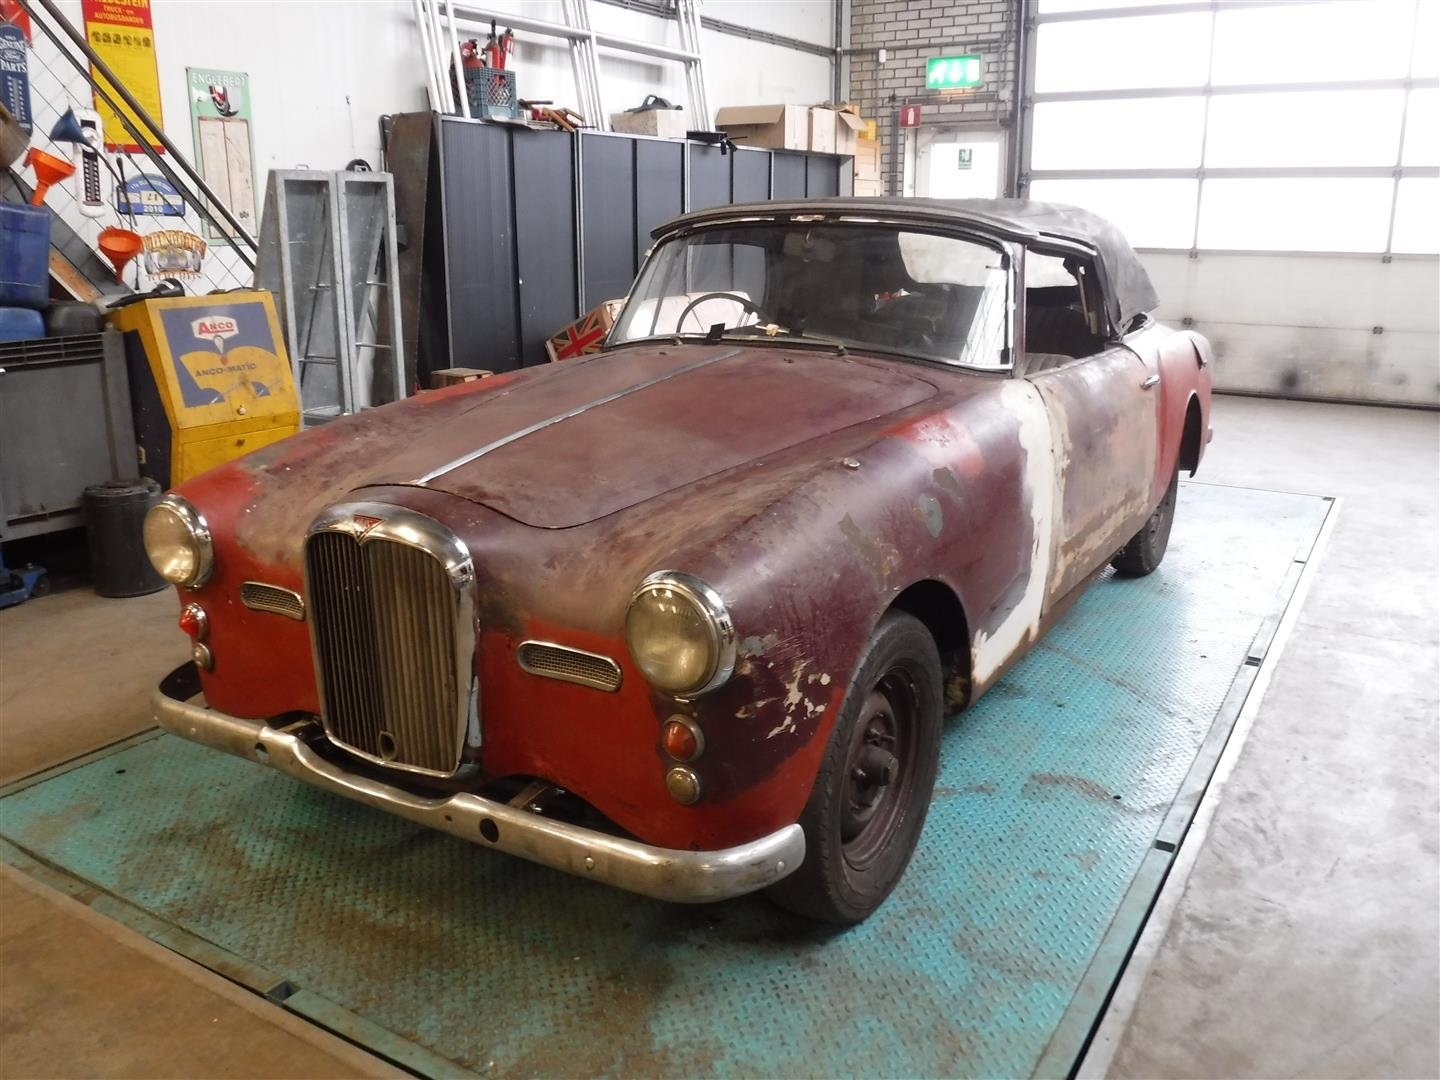 1960 Alvis TD21 convertible for sale For Sale (picture 1 of 6)